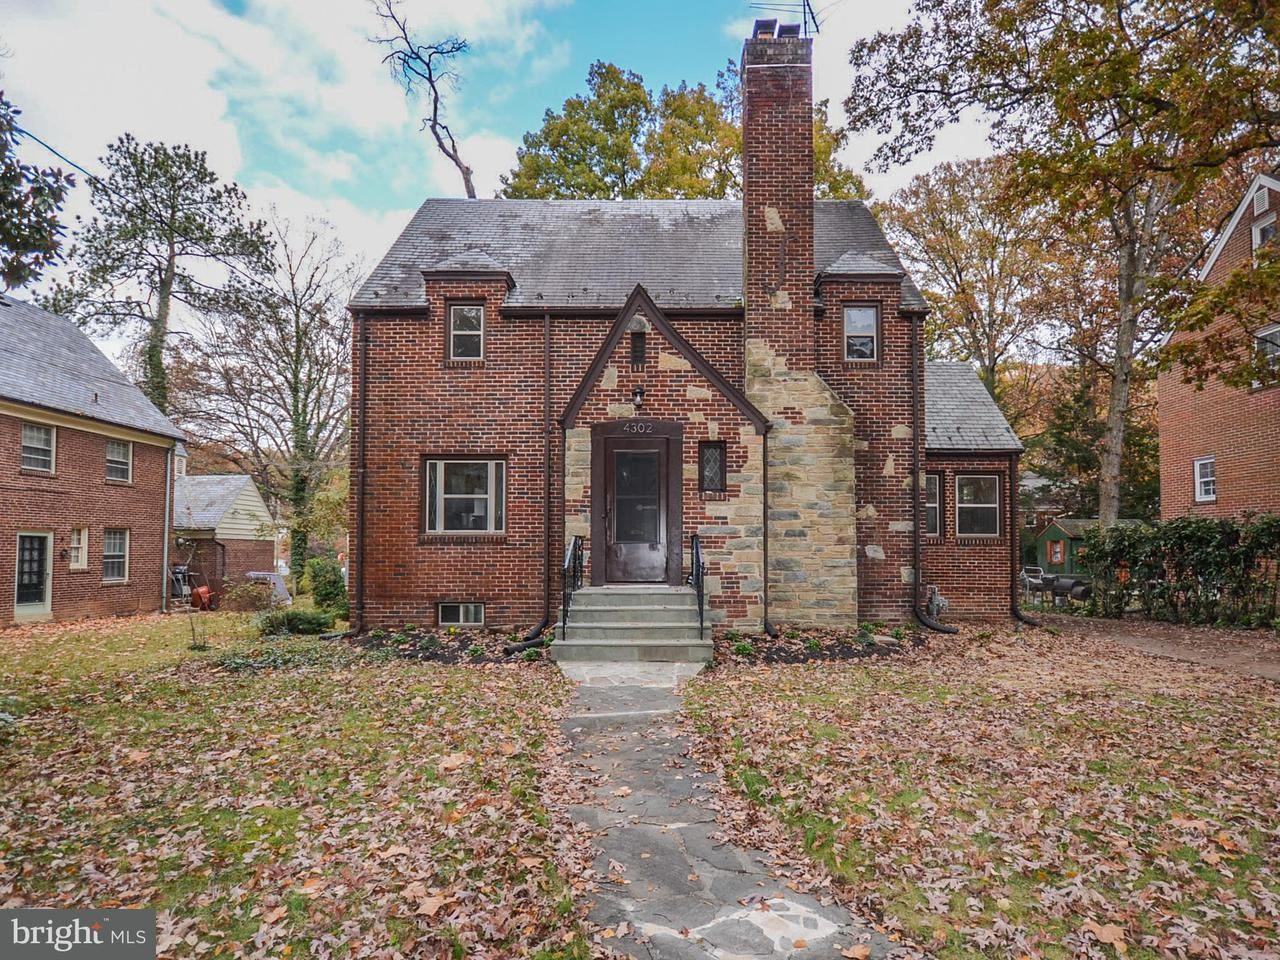 Single Family Home for Sale at 4302 Clagett Road 4302 Clagett Road University Park, Maryland 20782 United States